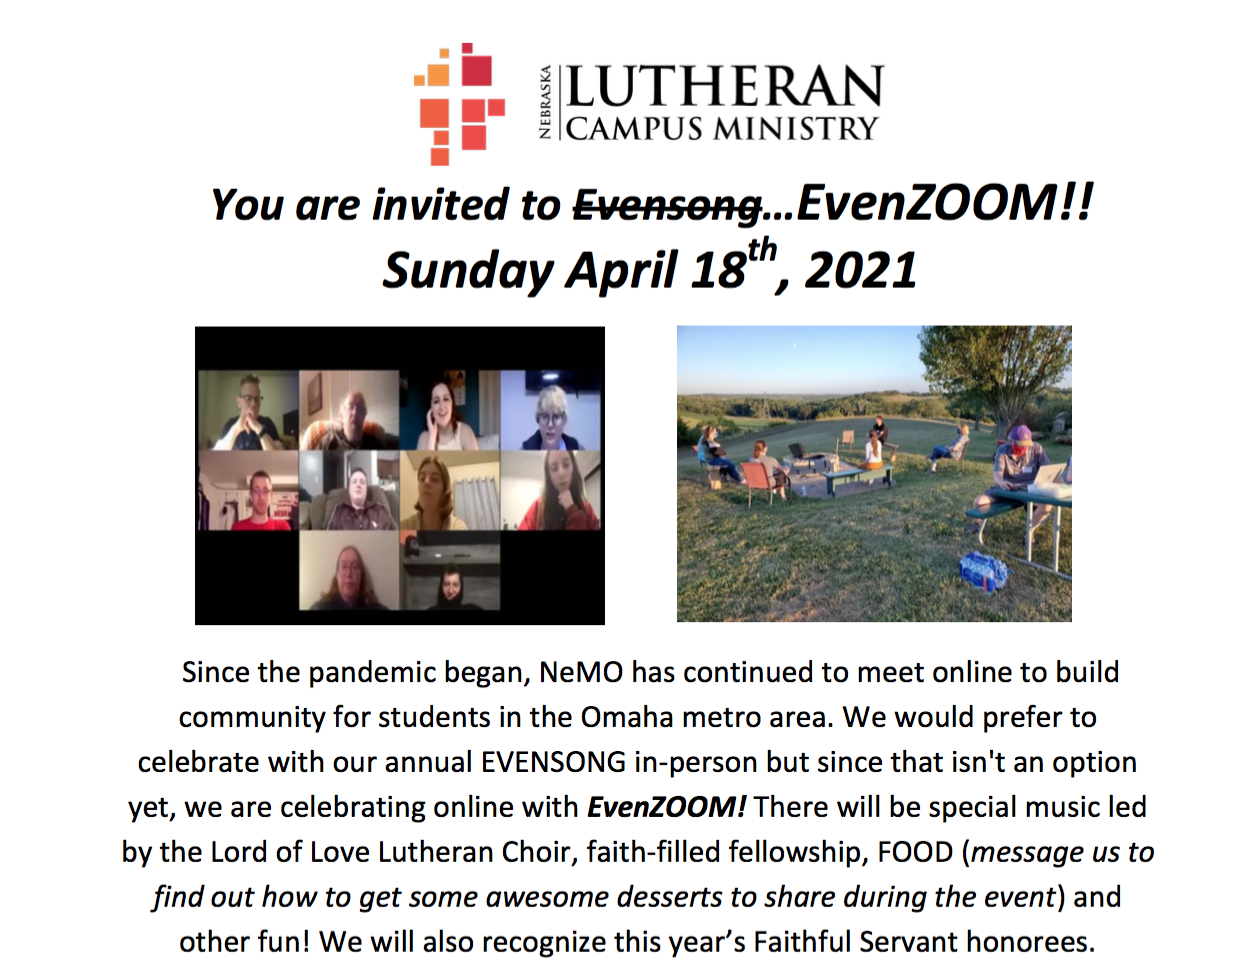 NE Lutheran Campus Ministry - Evenzoom